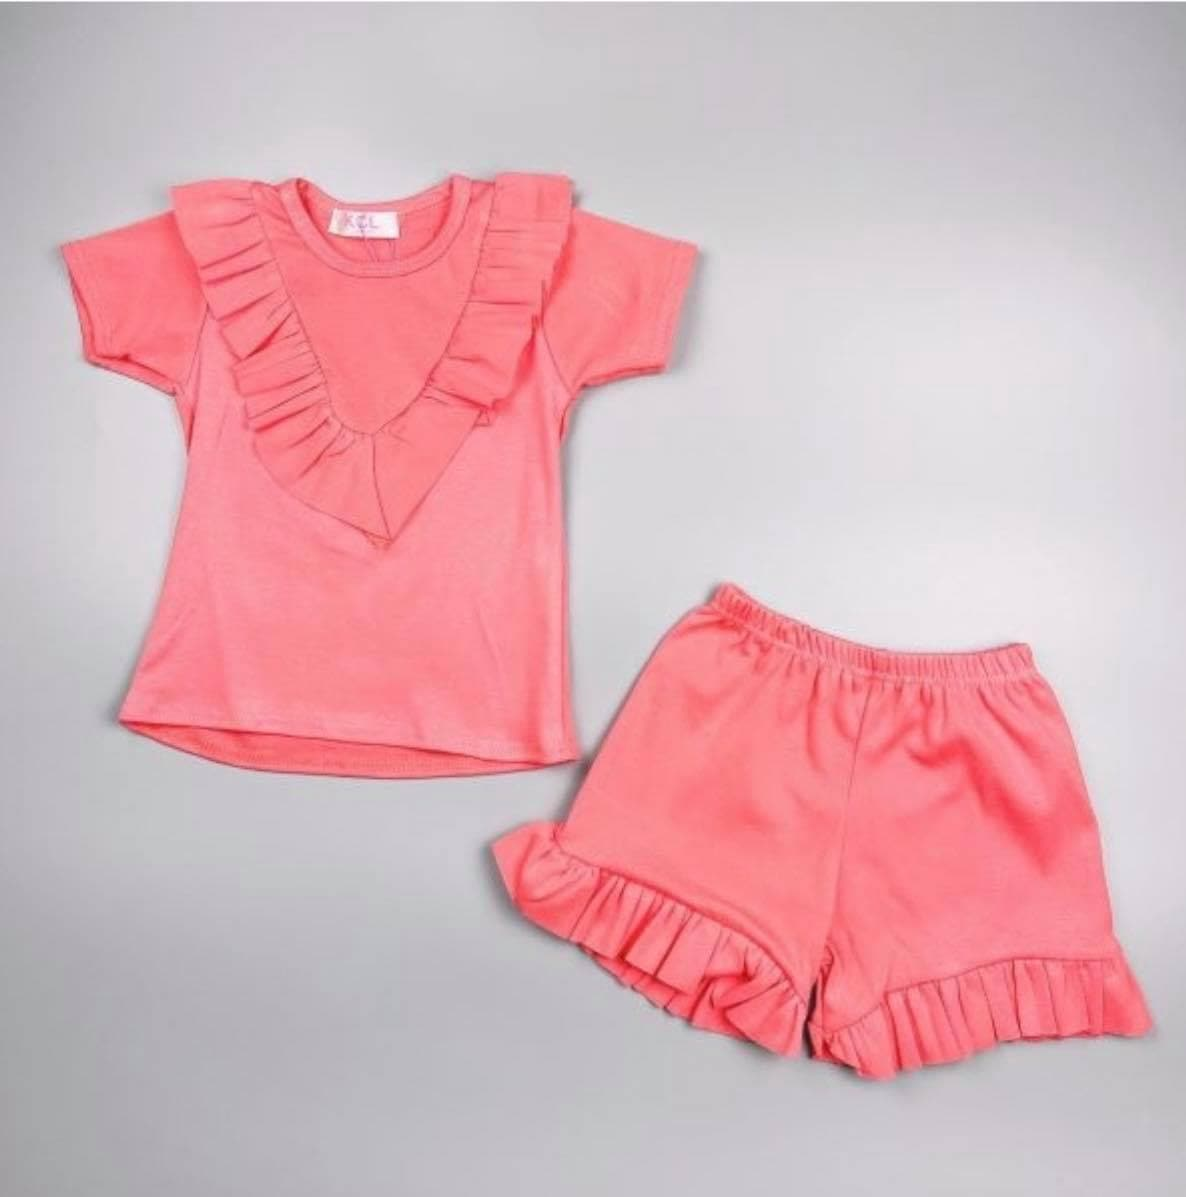 Mariposa Children's Boutique Loungewear Loungewear - Girls Coral Ruffle T-Shirt & Shorts